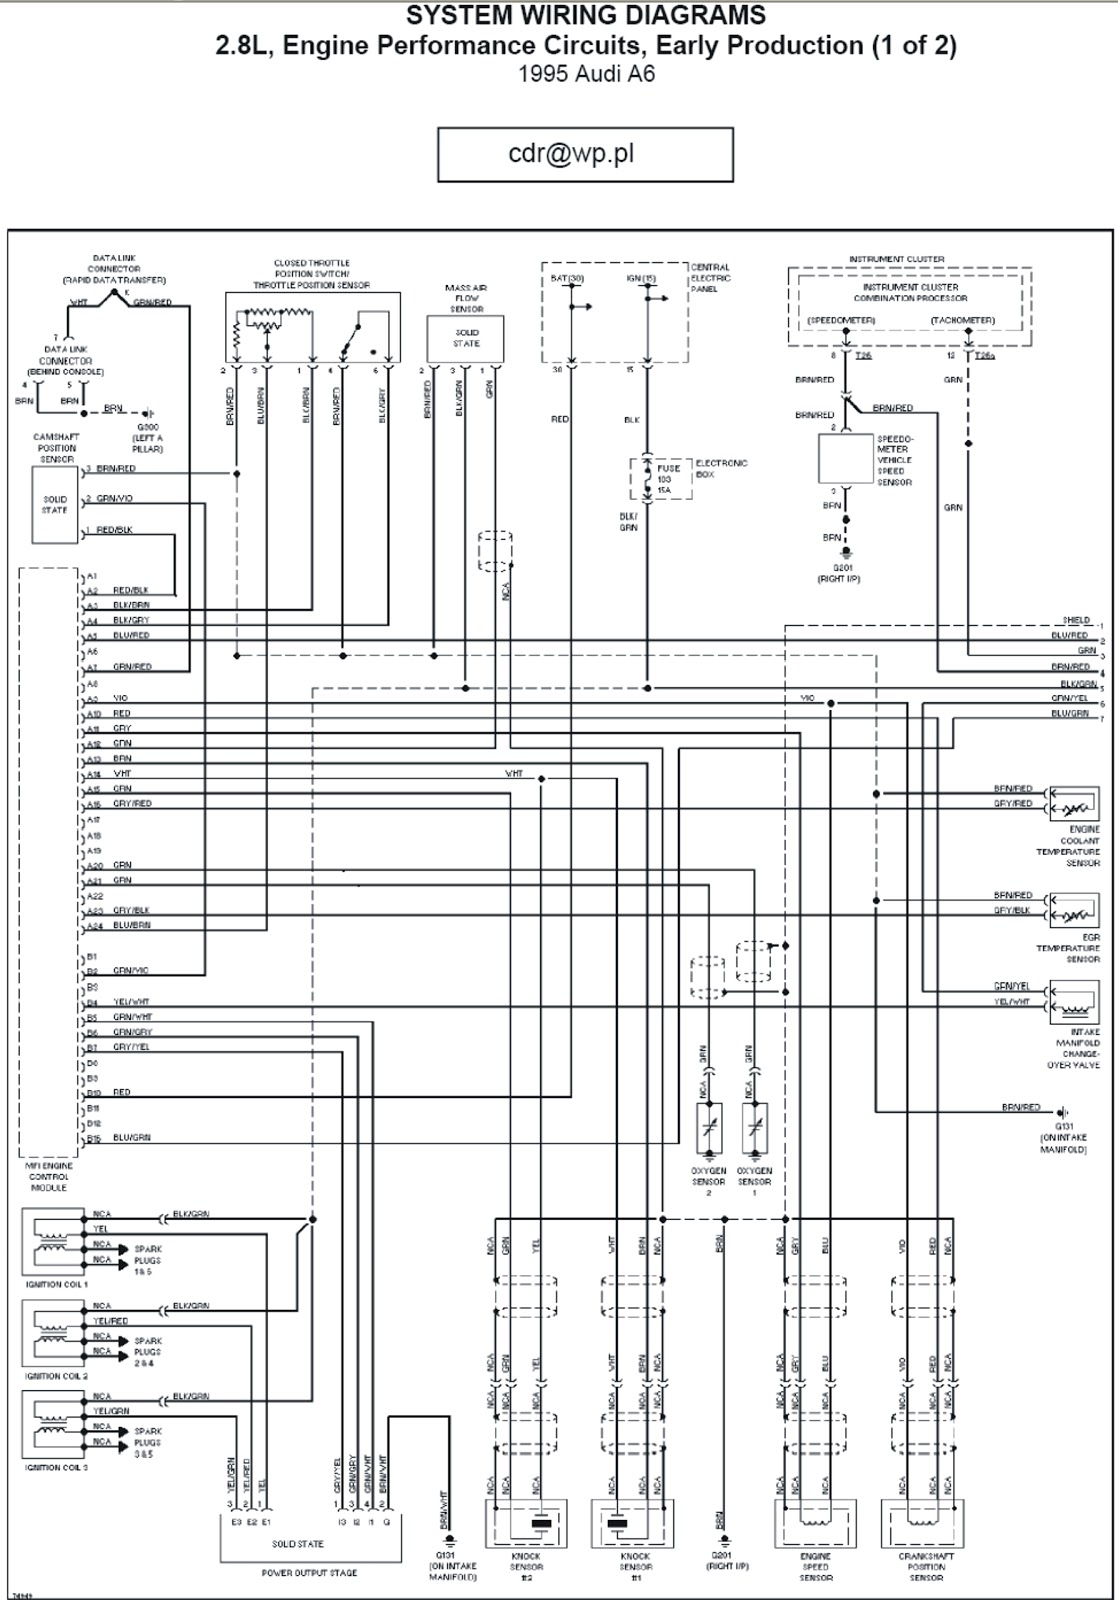 1997 audi wiring diagram wiring diagram sheet1997 audi a6 wiring diagram wiring diagram img 1997 camaro [ 1118 x 1600 Pixel ]